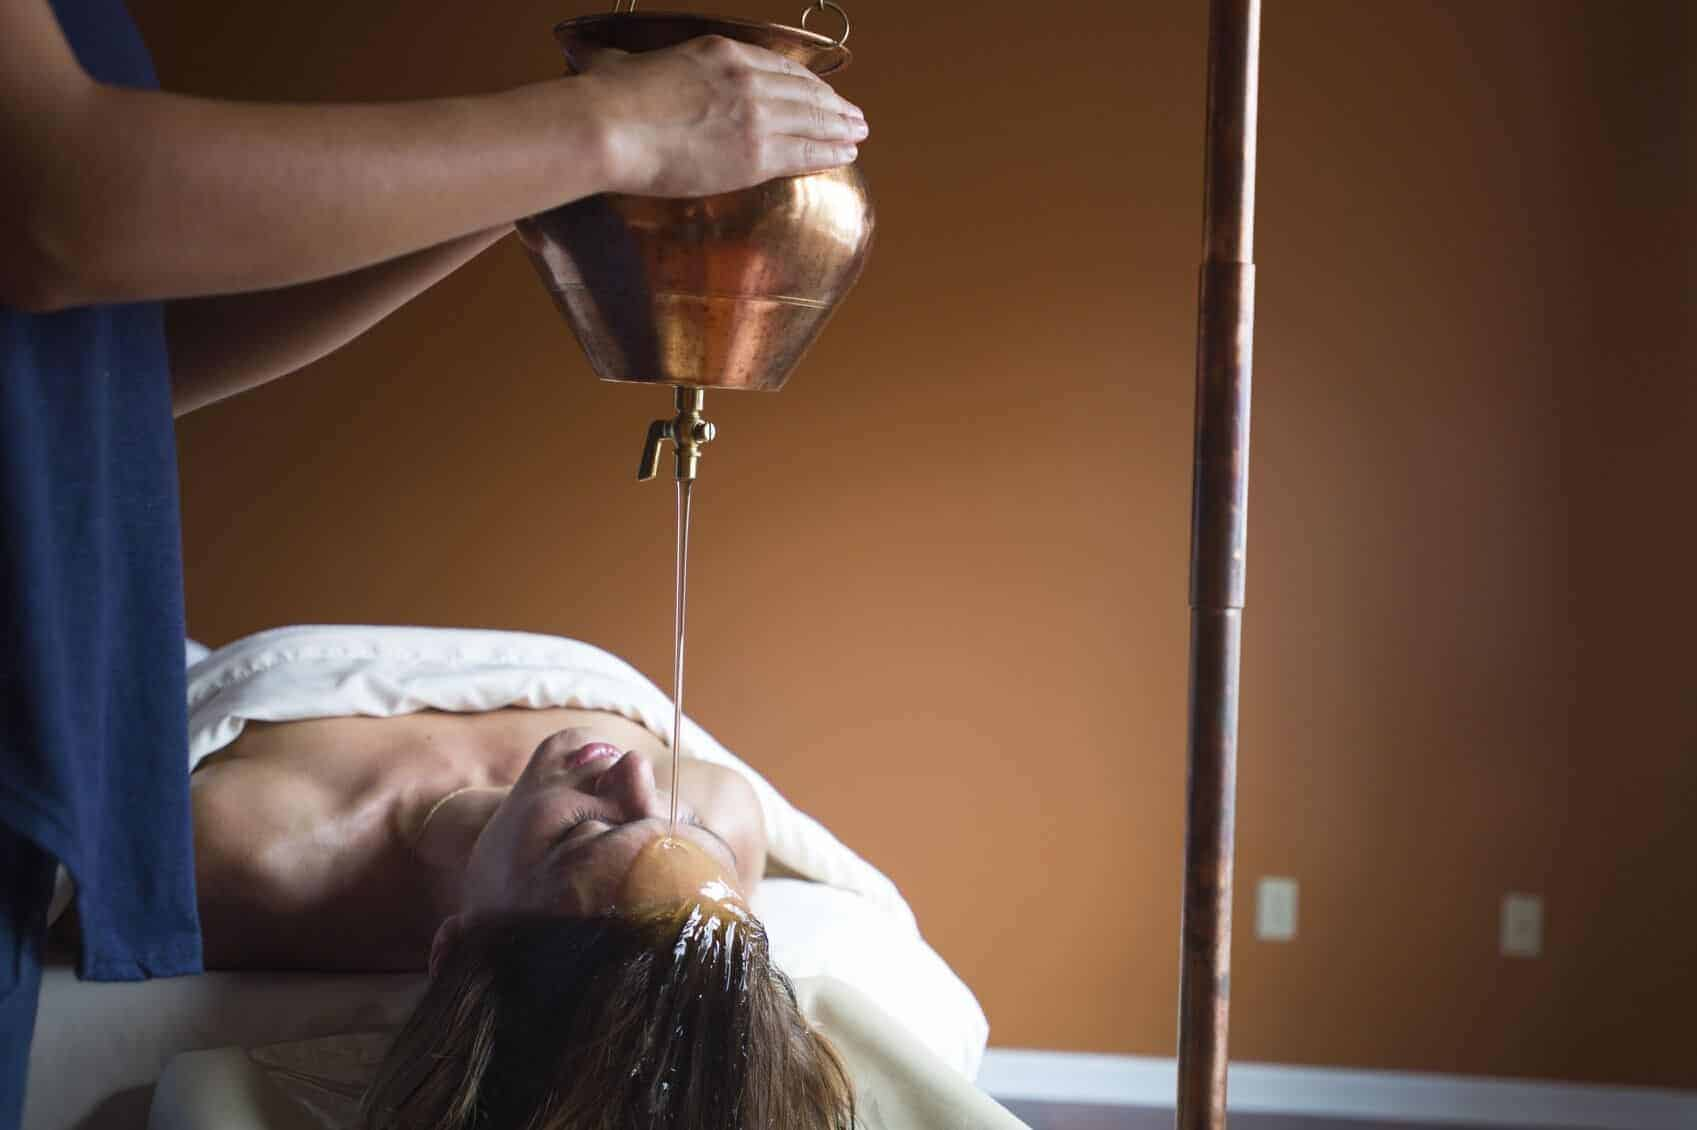 Ayurvedic center with relaxing wellness treatments.